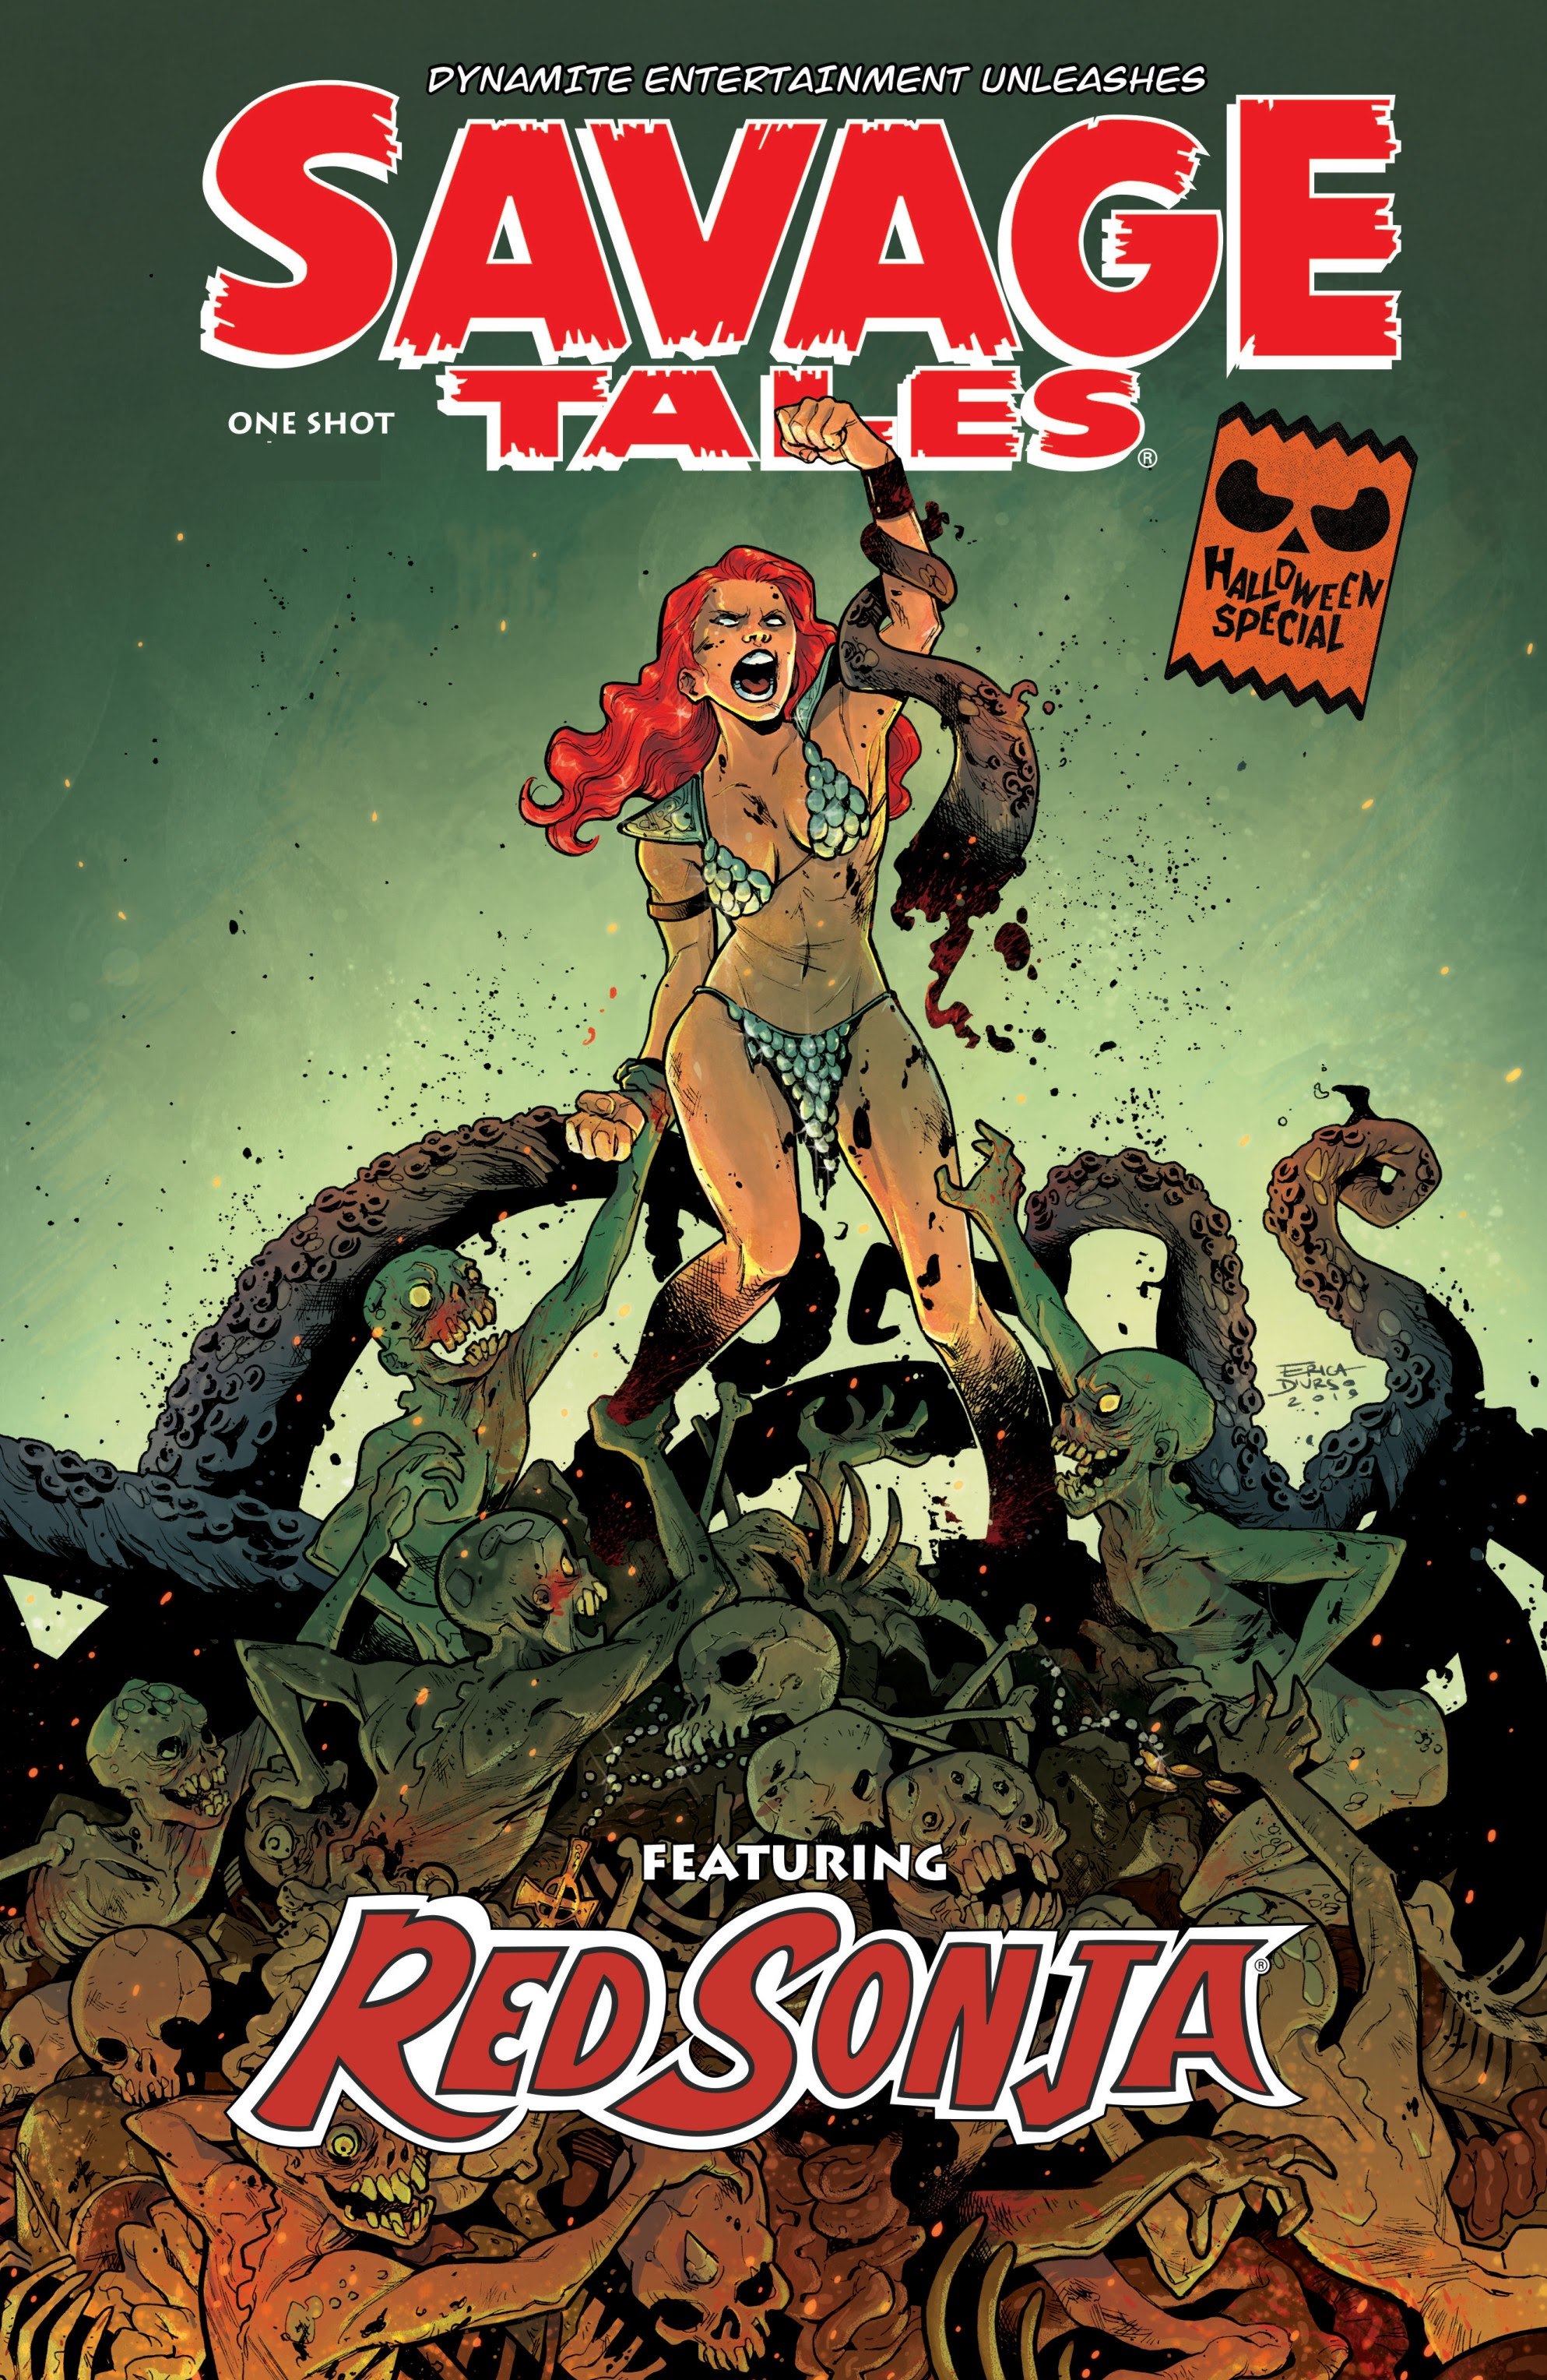 Savage Tales: A Red Sonja Halloween Special Full Page 1